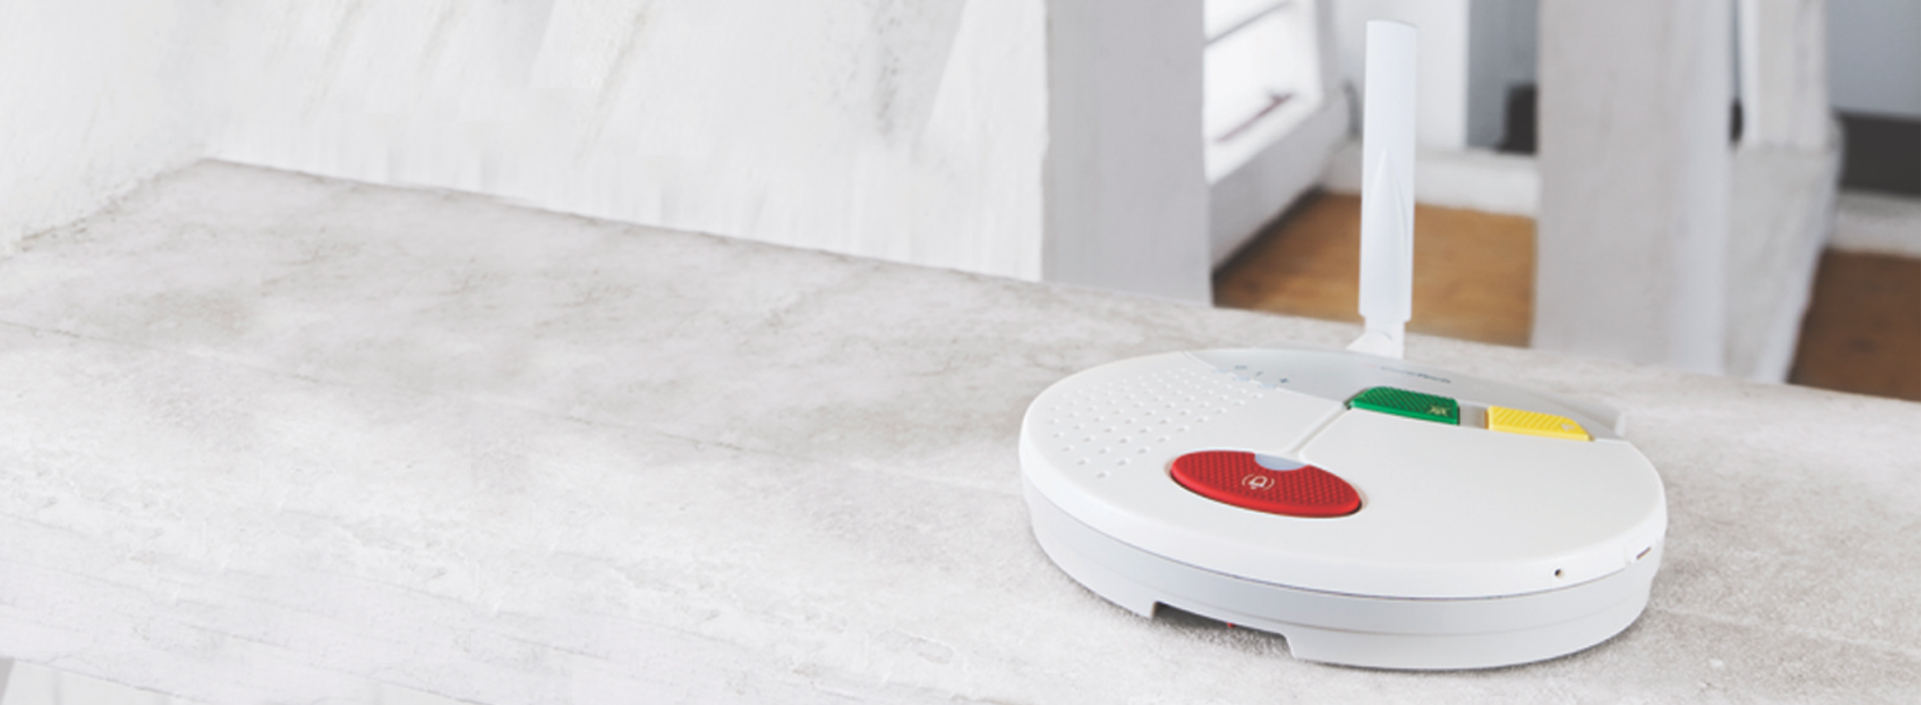 Doro CareIP IP carephone on counter top